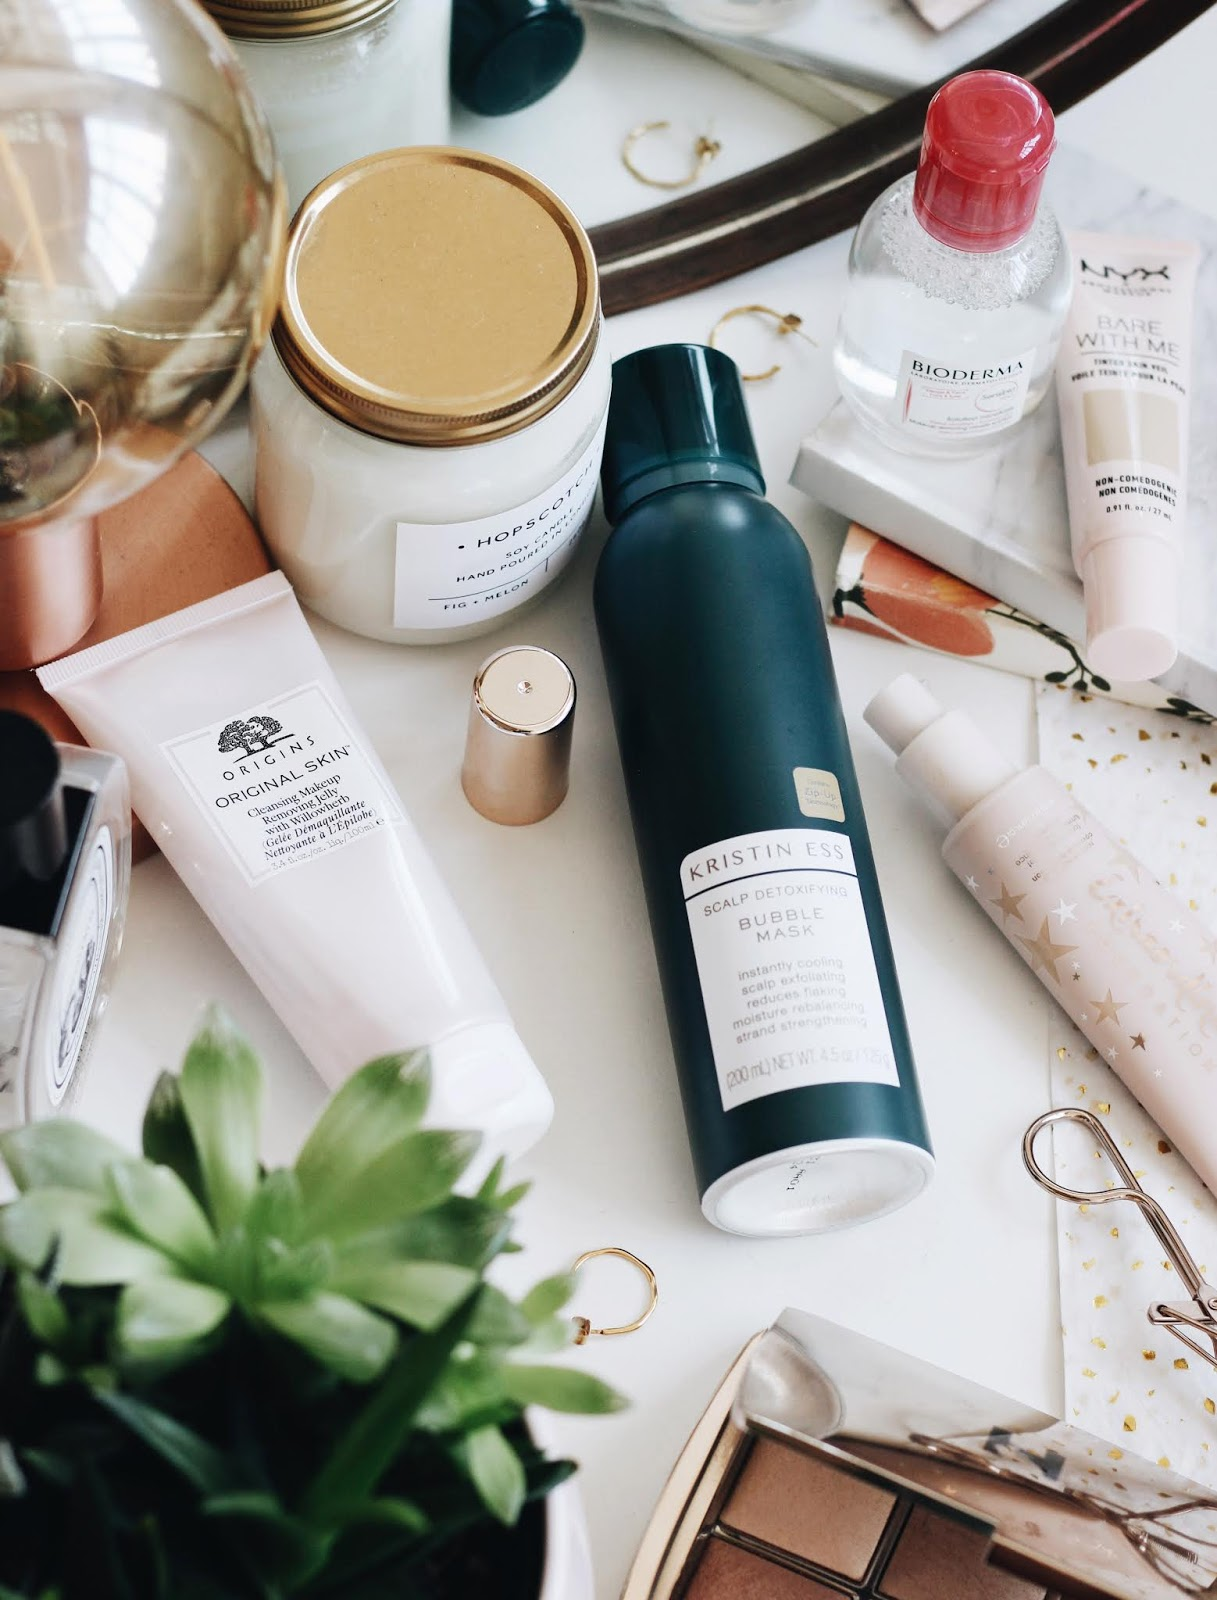 A Spring Beauty Haul ft. Kristin Ess, Bioderma, Origins, NYX and Ciate.